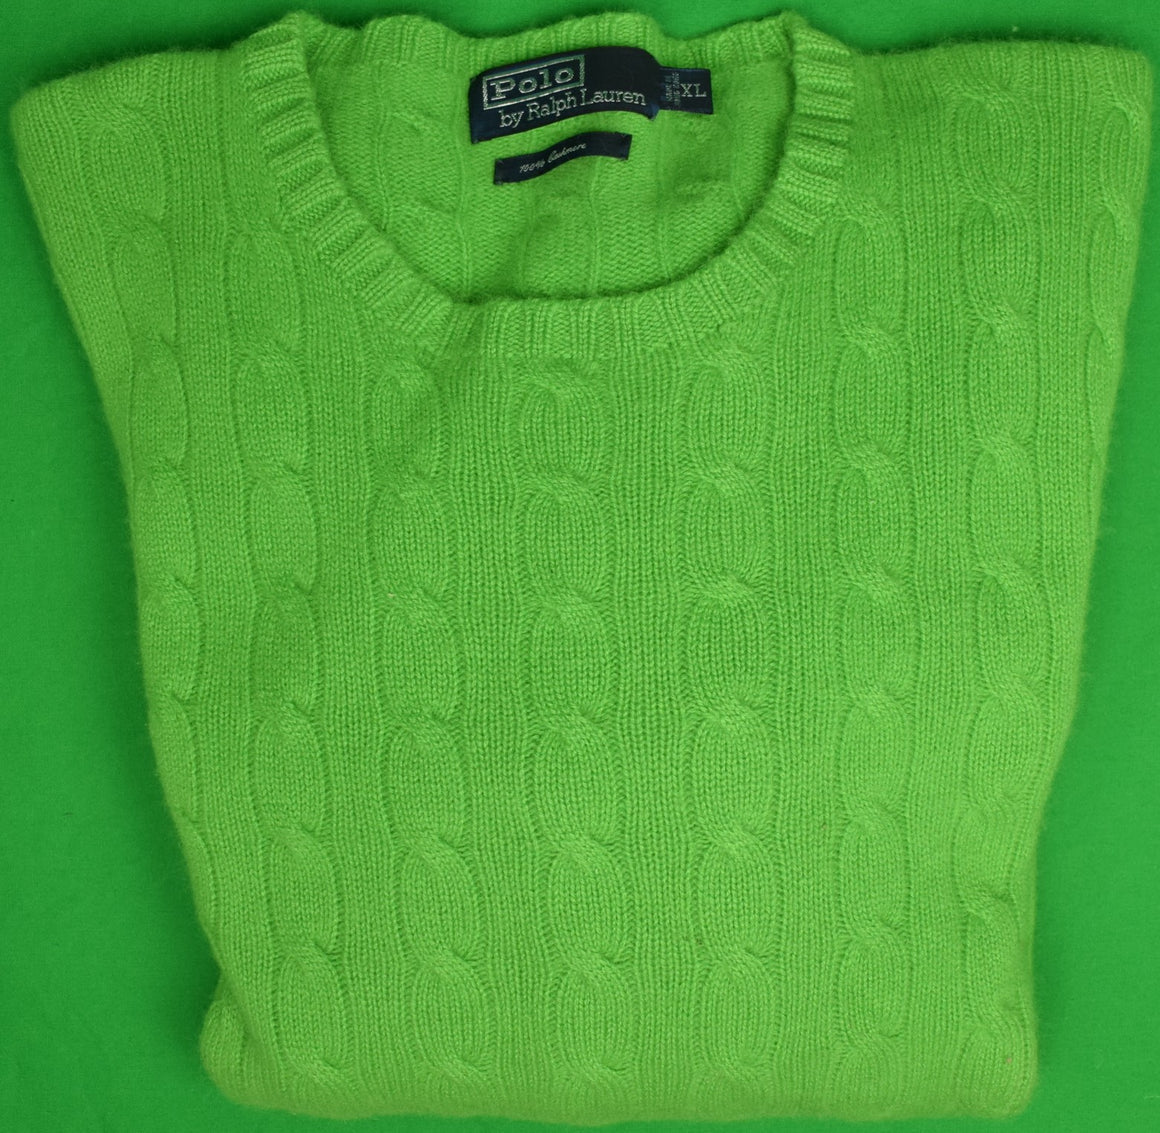 Polo by Ralph Lauren Apple Green 100% Cashmere Cable Crew Neck Sweater Sz: XL